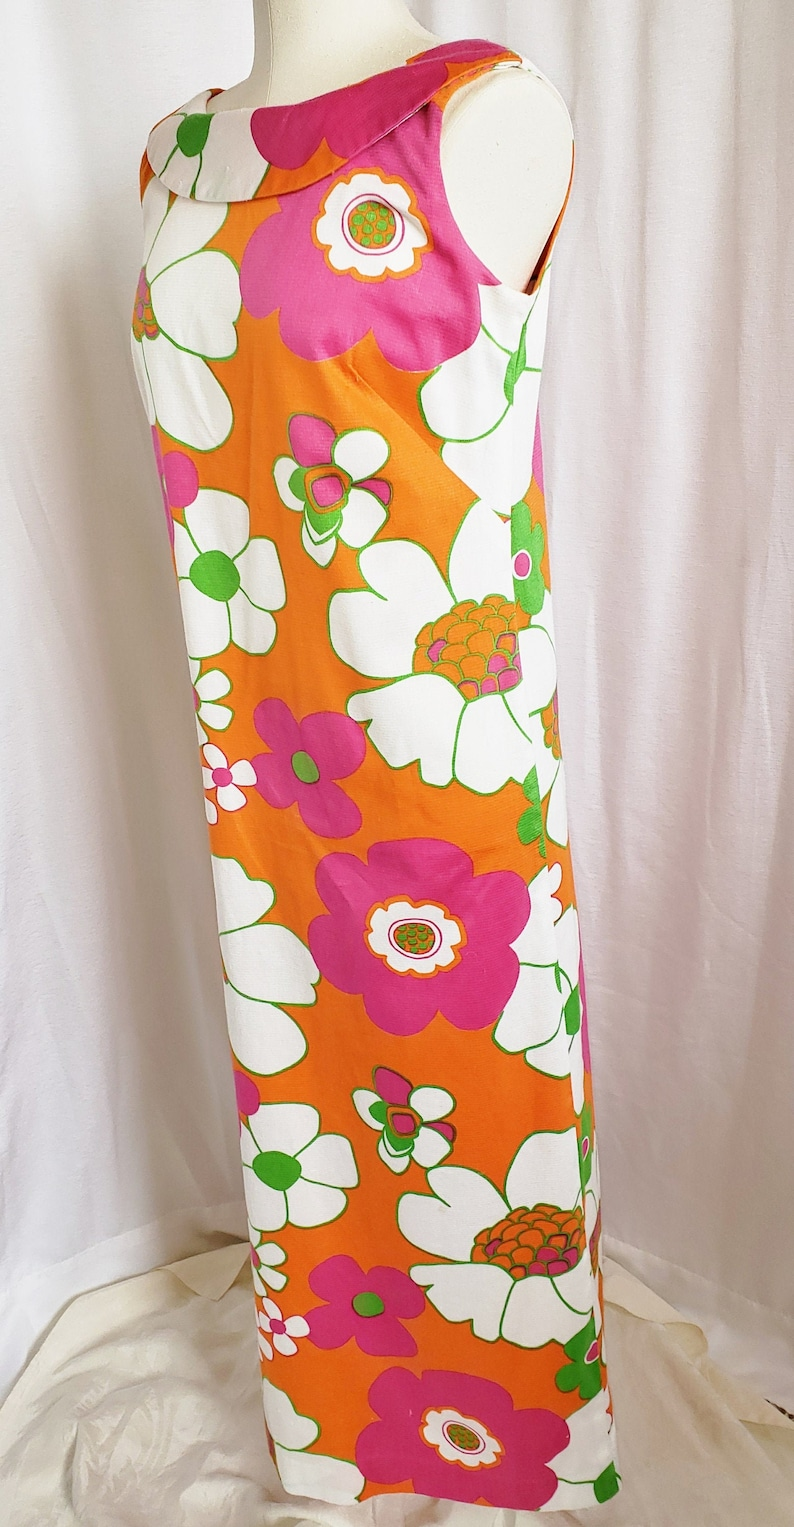 500 Vintage Style Dresses for Sale | Vintage Inspired Dresses 60s ALOHA Meaaloha Long Island Dress 1960s SophisticatedLaRue $72.00 AT vintagedancer.com